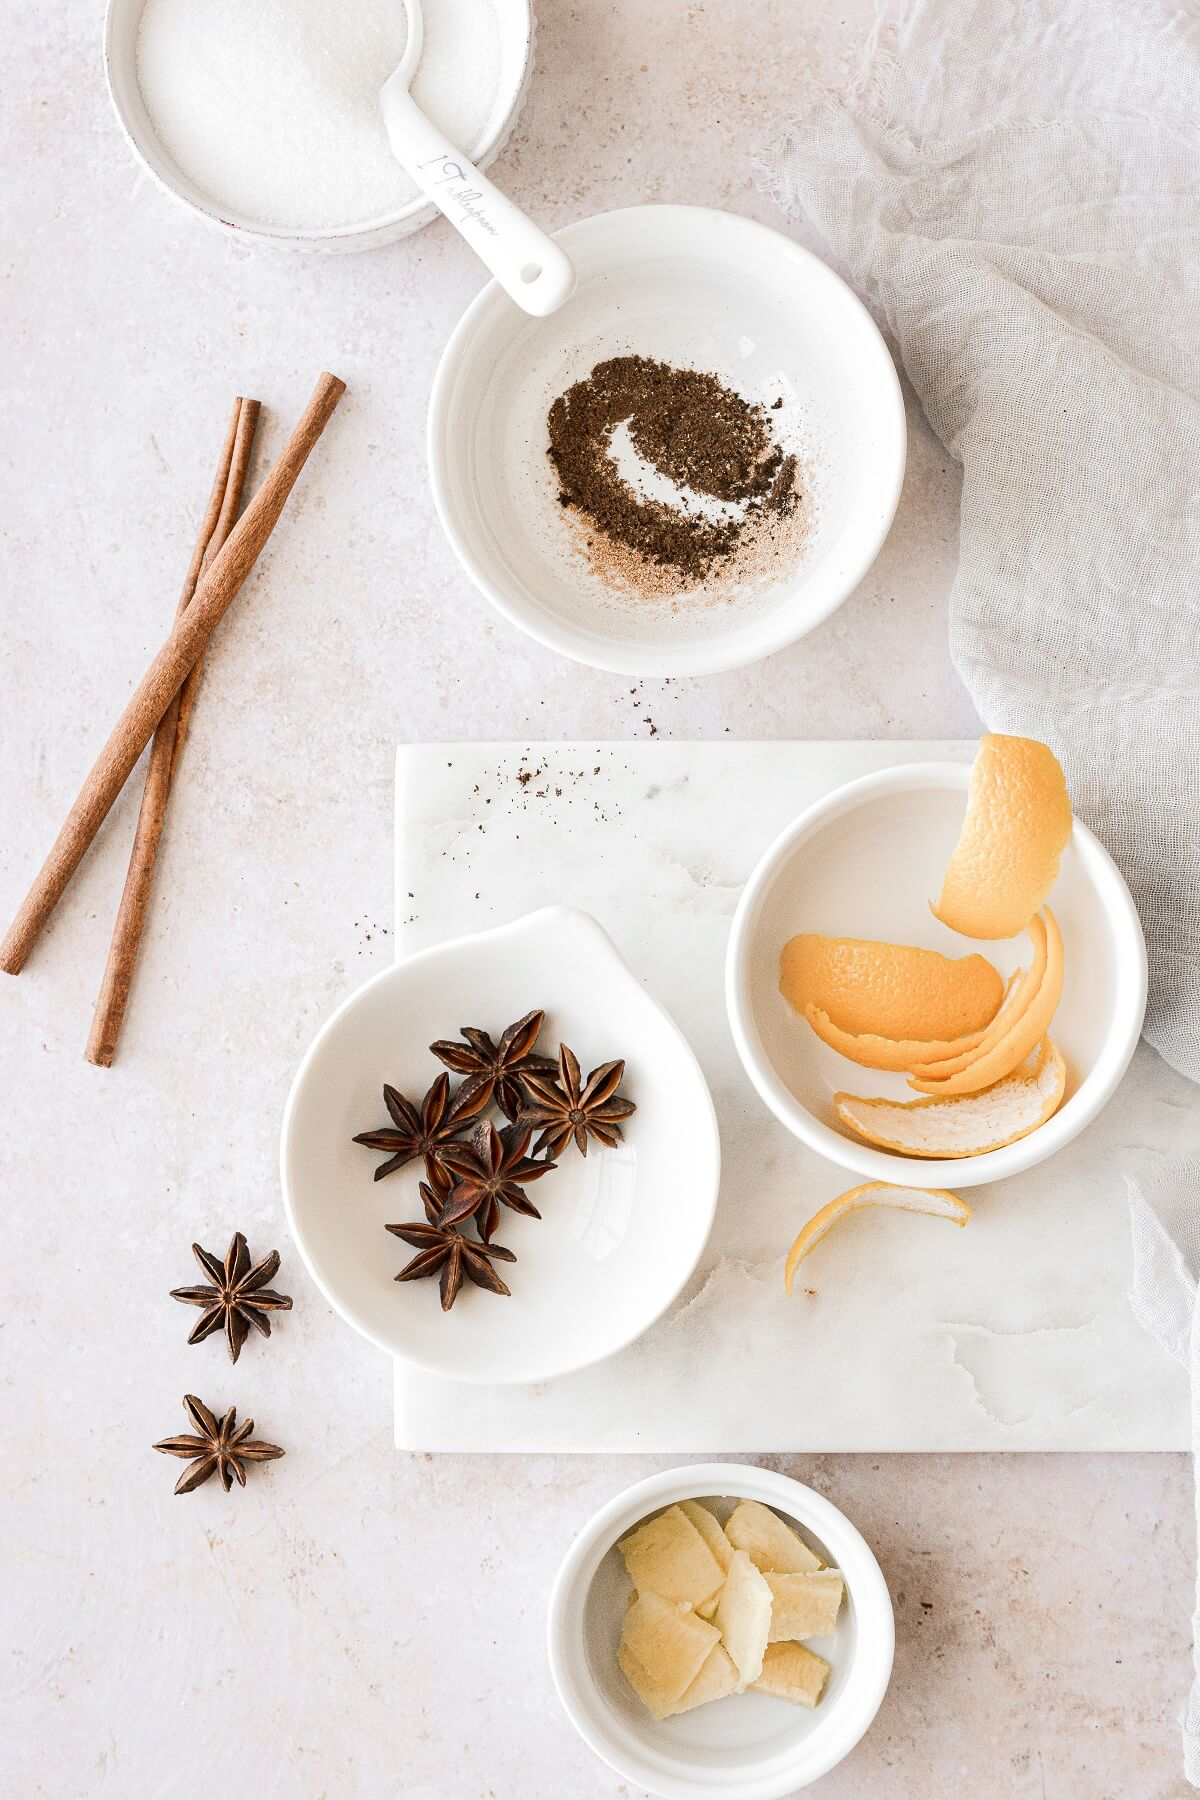 Spices for poaching pears.